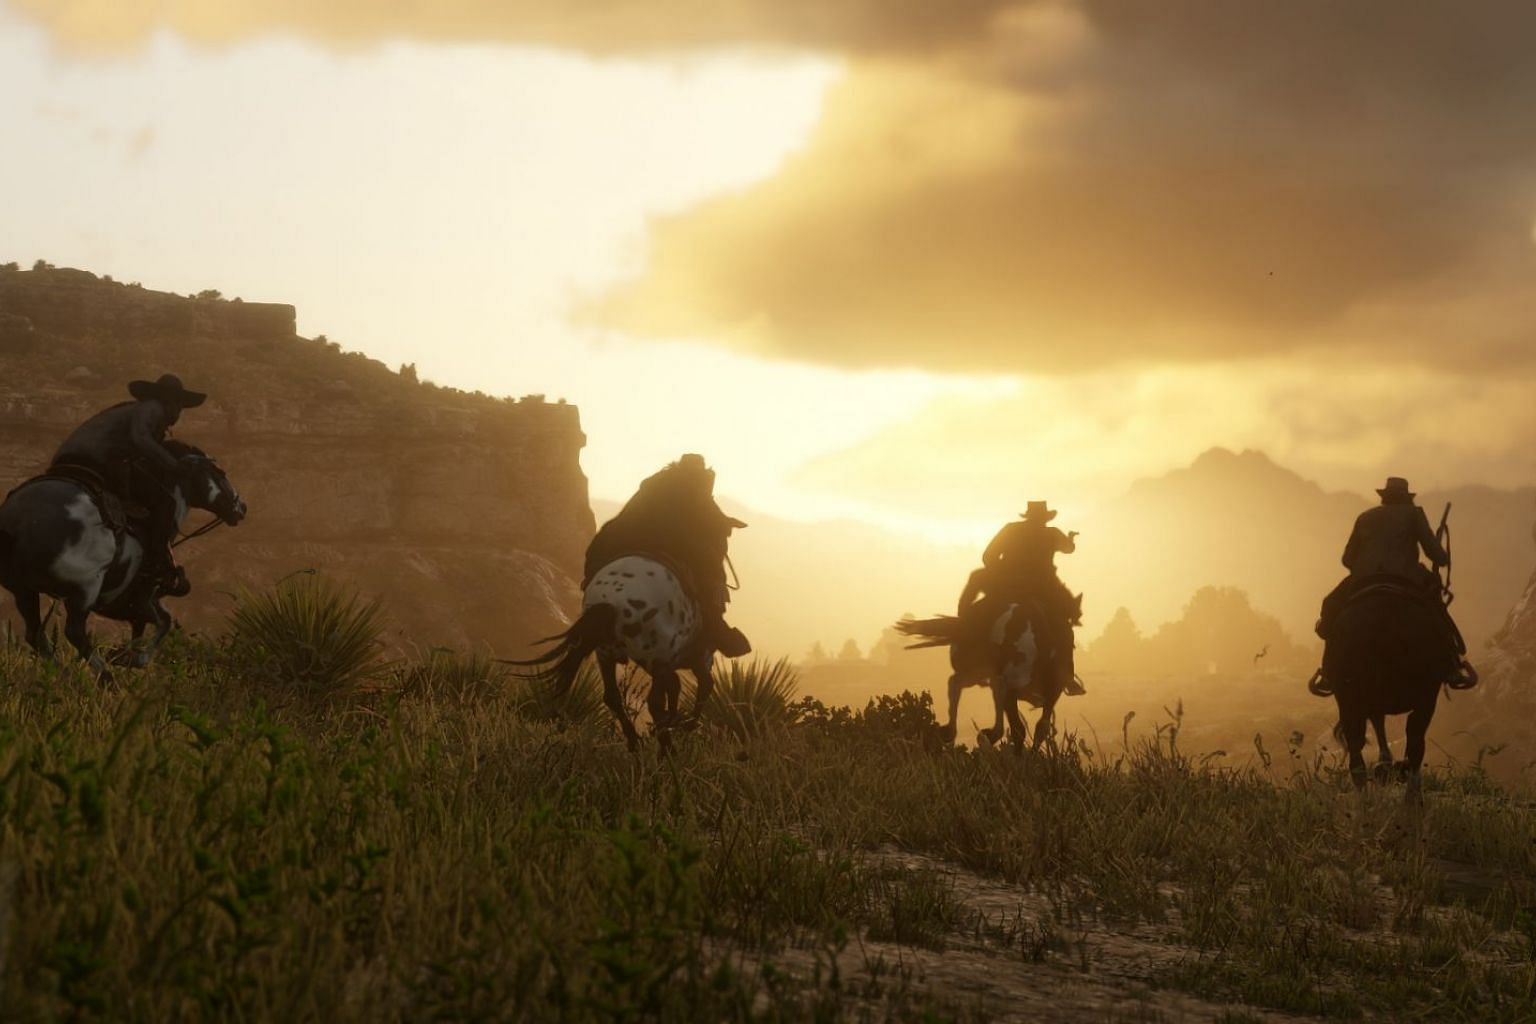 Riding off into the sunset is not an option for many of the colourful characters in Rockstar Games' epic Western action adventure game.